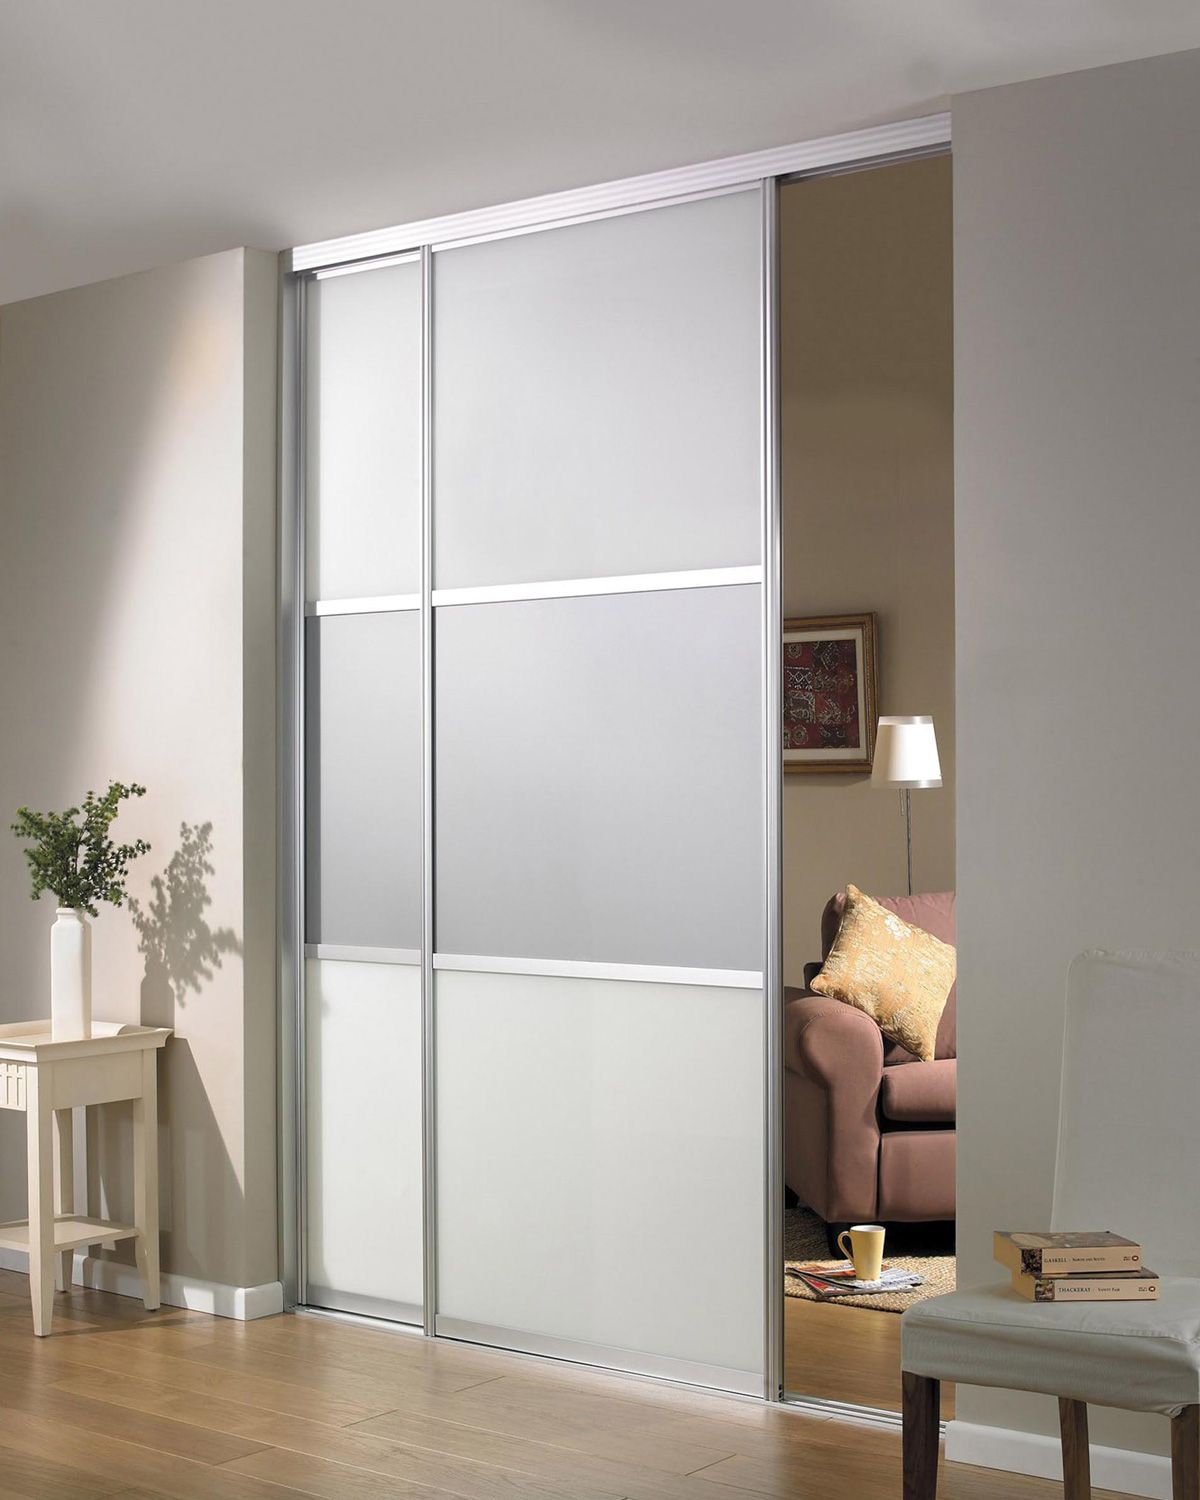 Beautiful Sliding Room Divider Design Idea In Gray With Two Panels And Single Rail Installed